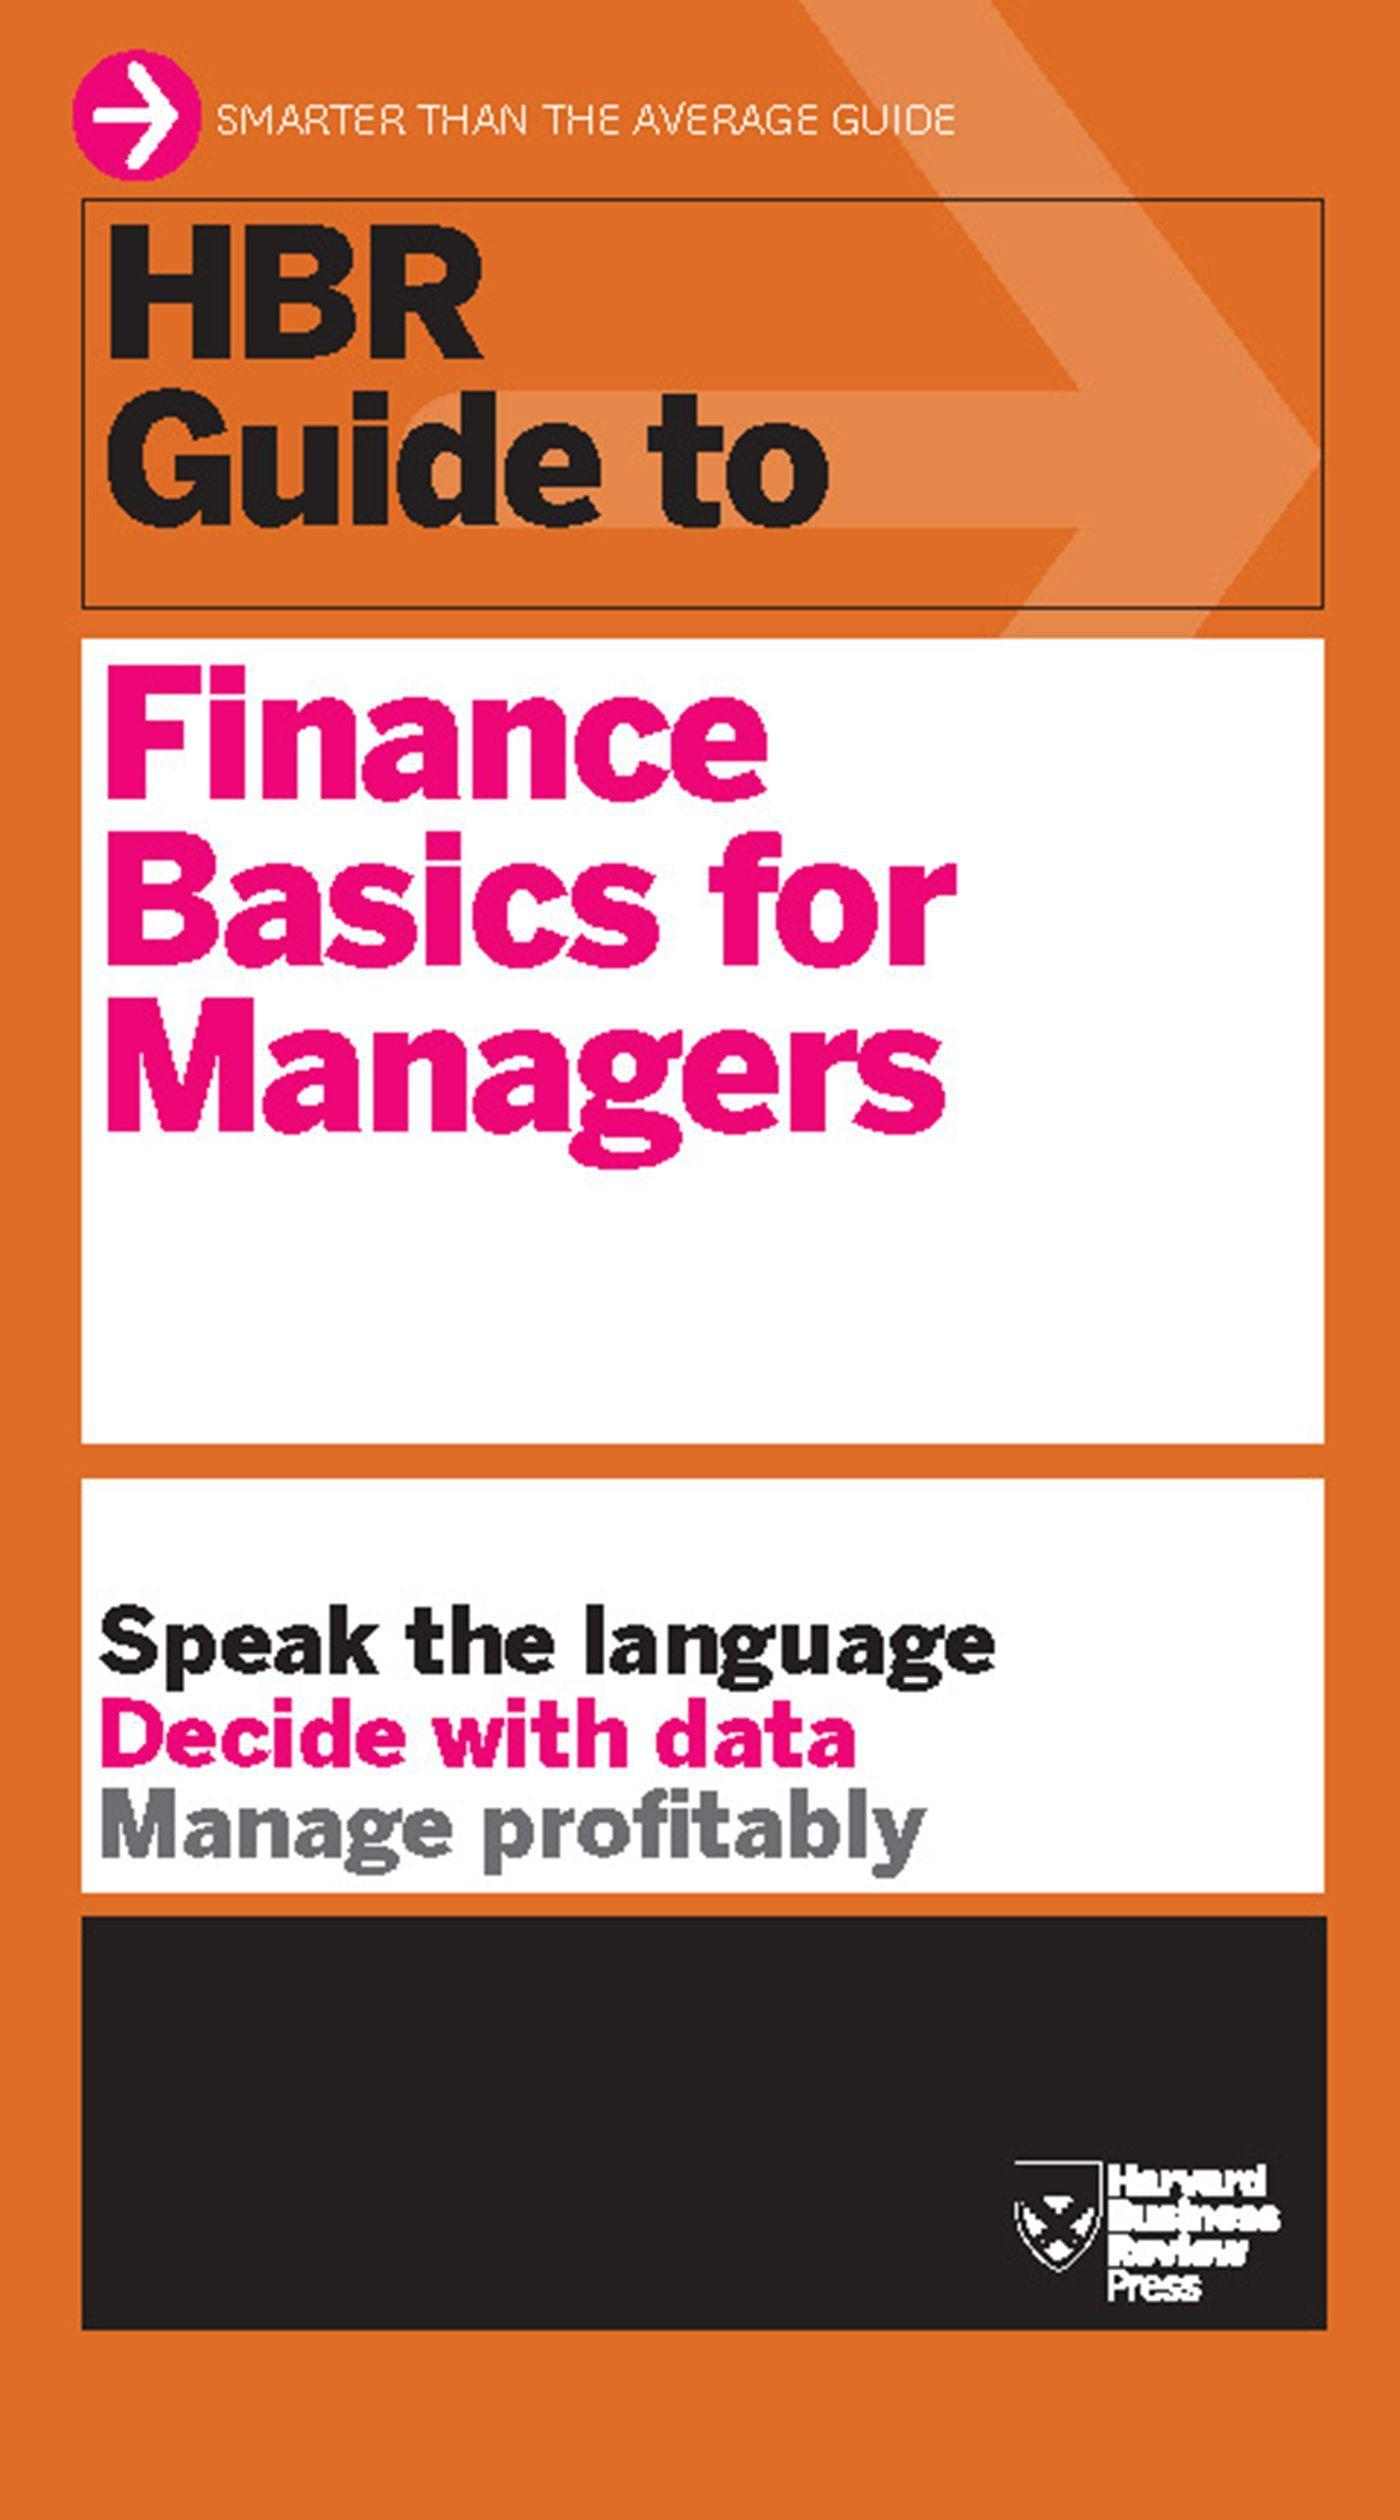 HBR Guide to Finance Basics for Managers